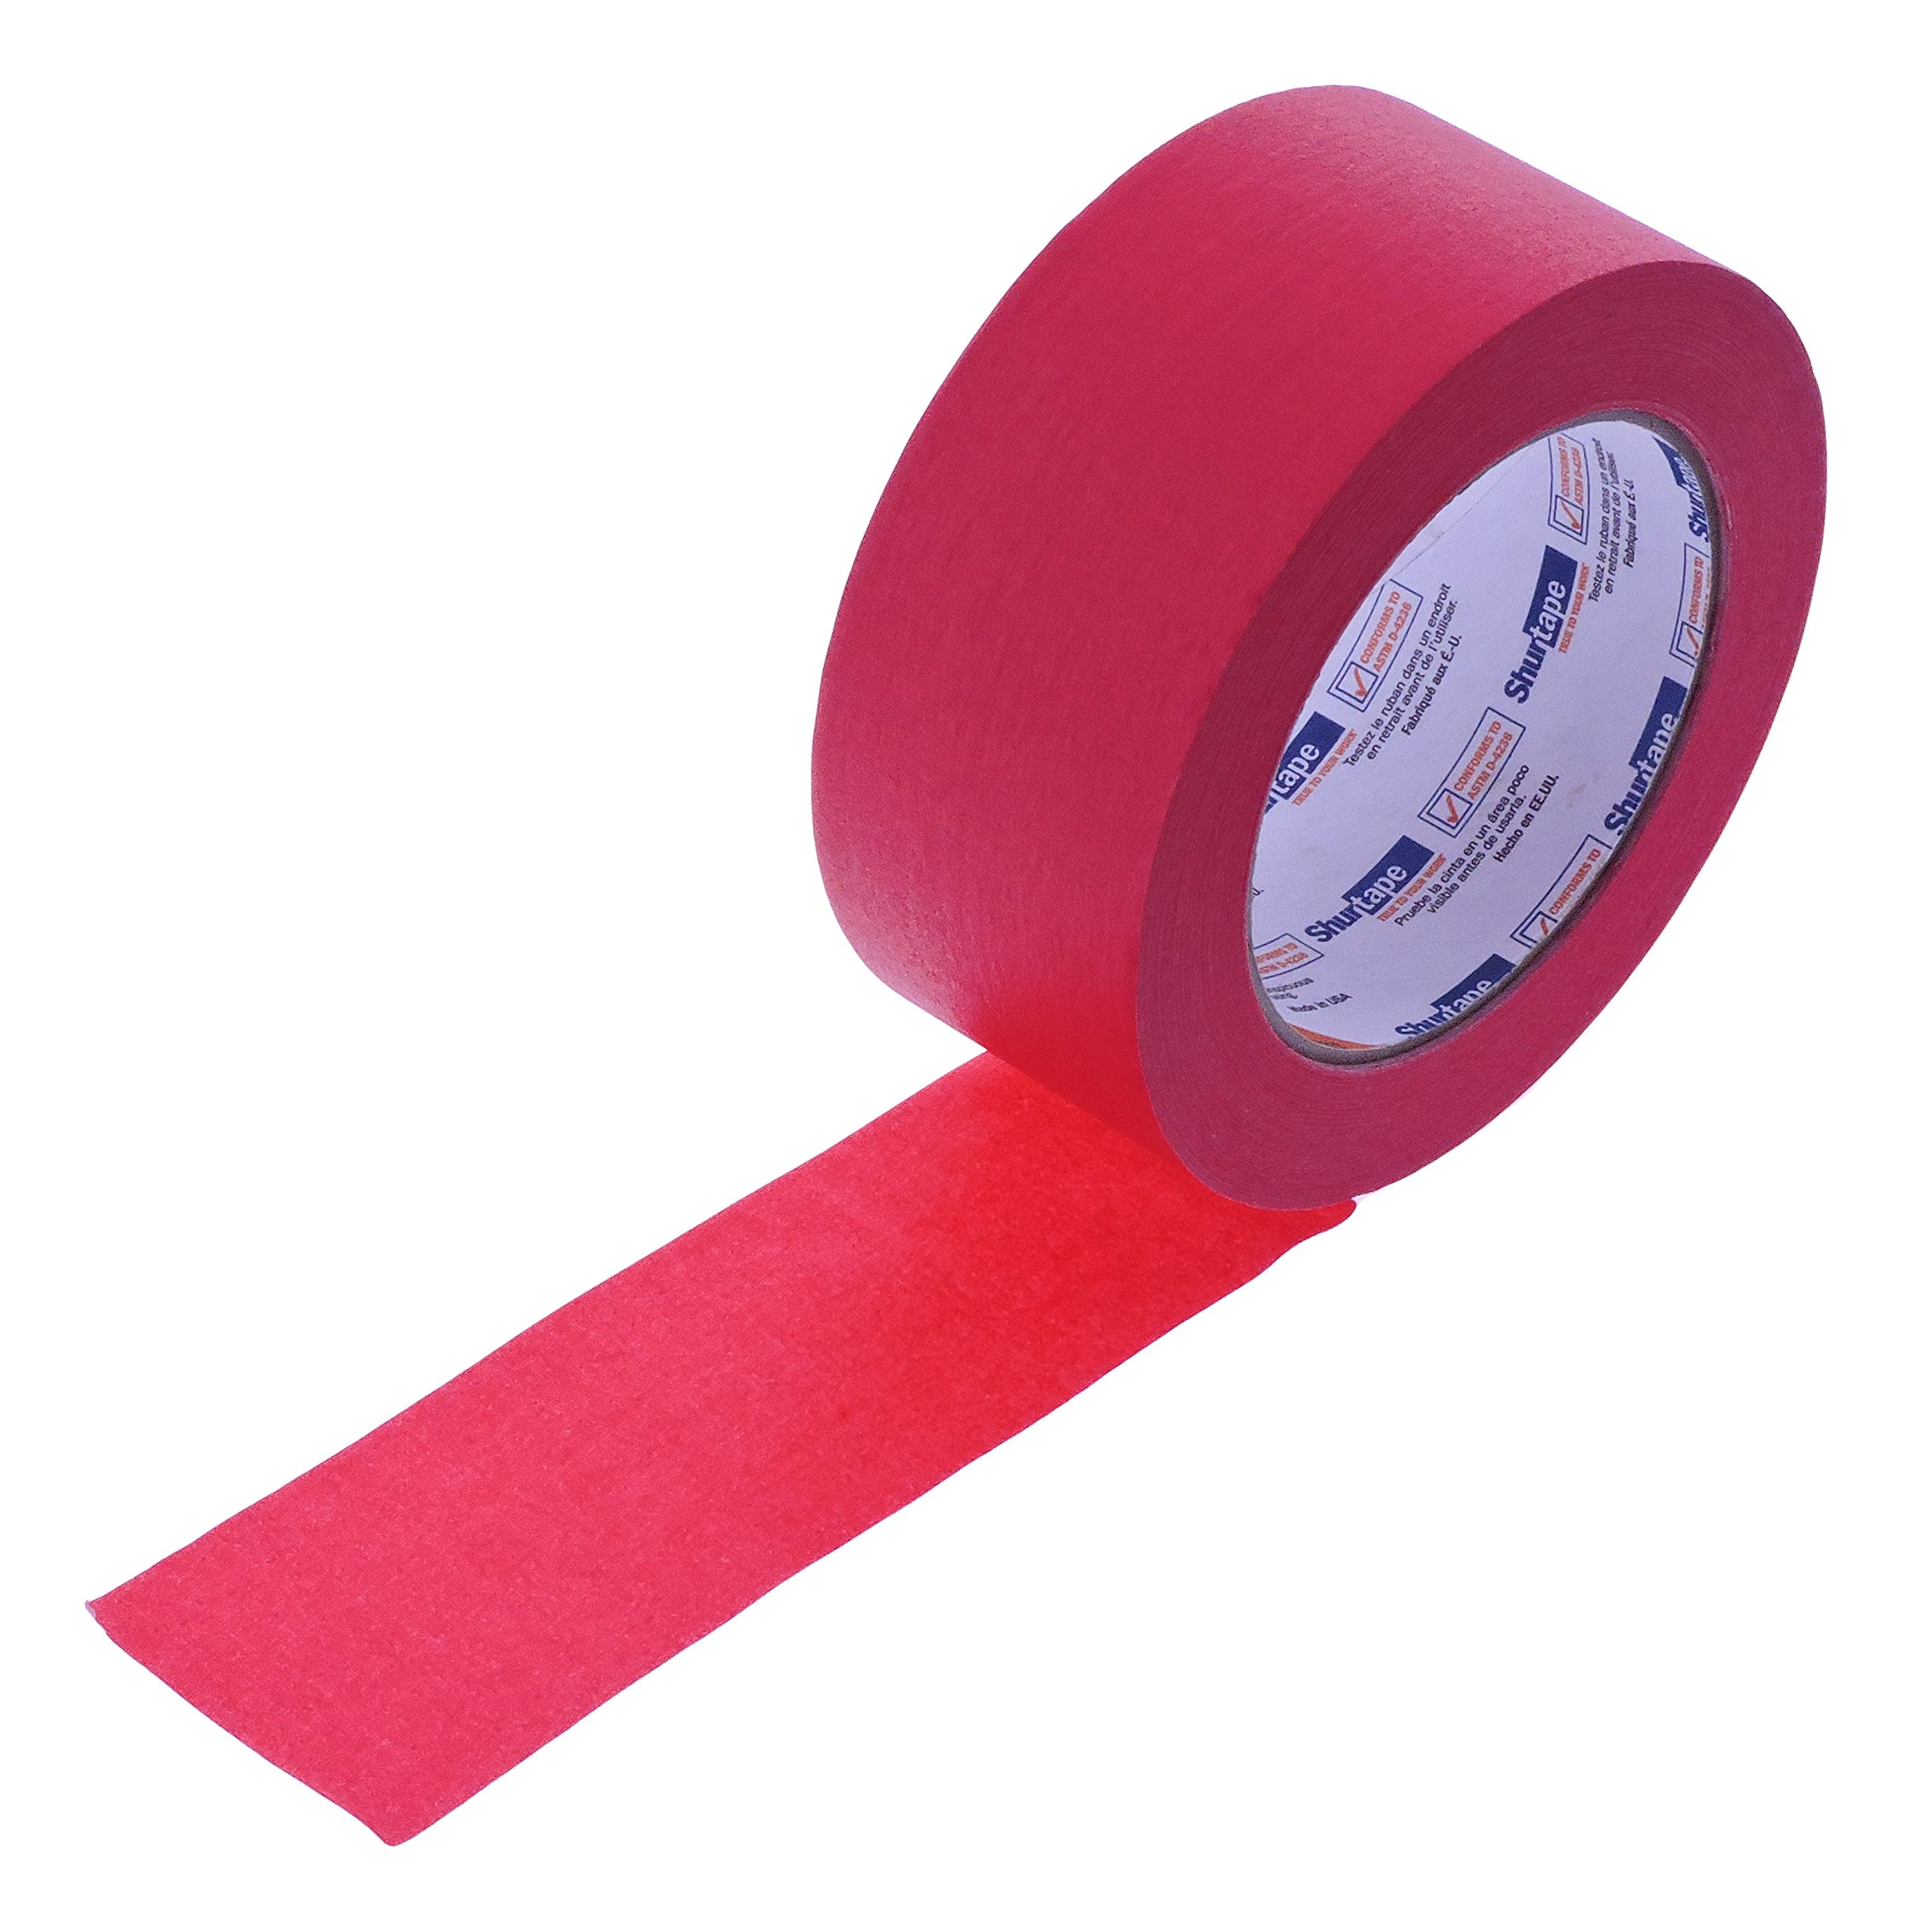 2'' in x 60yd Red Masking Tape Extra Sticky PRO Grade High Stick Special Project Painters Tape Painting Trim Arts Crafts School Home Office 21 Days 48MM x 55M 1.88 inch